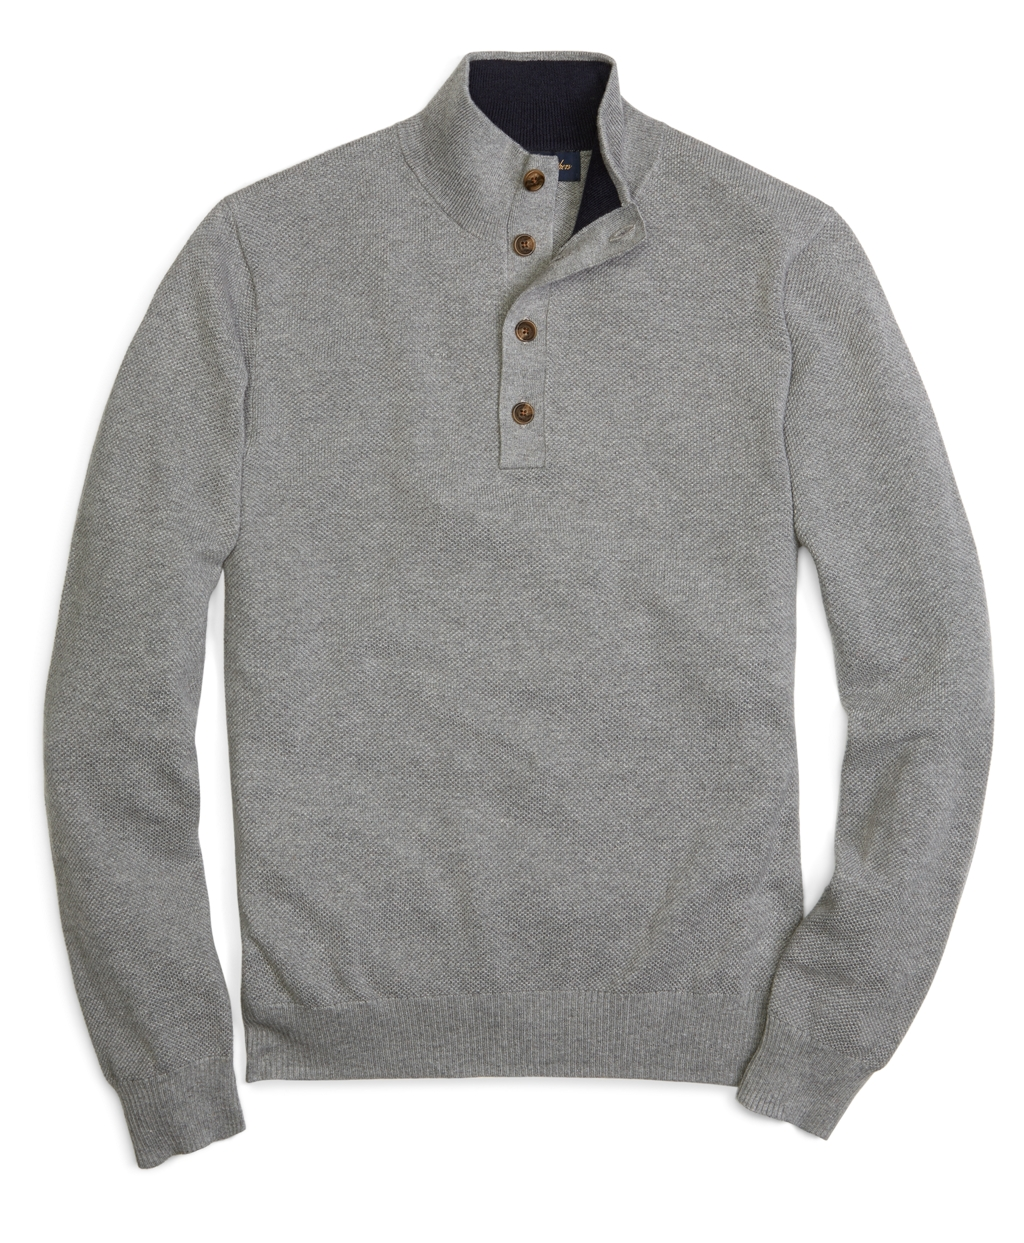 3061fe01fde0 Lyst - Brooks Brothers Cotton Cashmere Button Mock Neck Sweater in ...